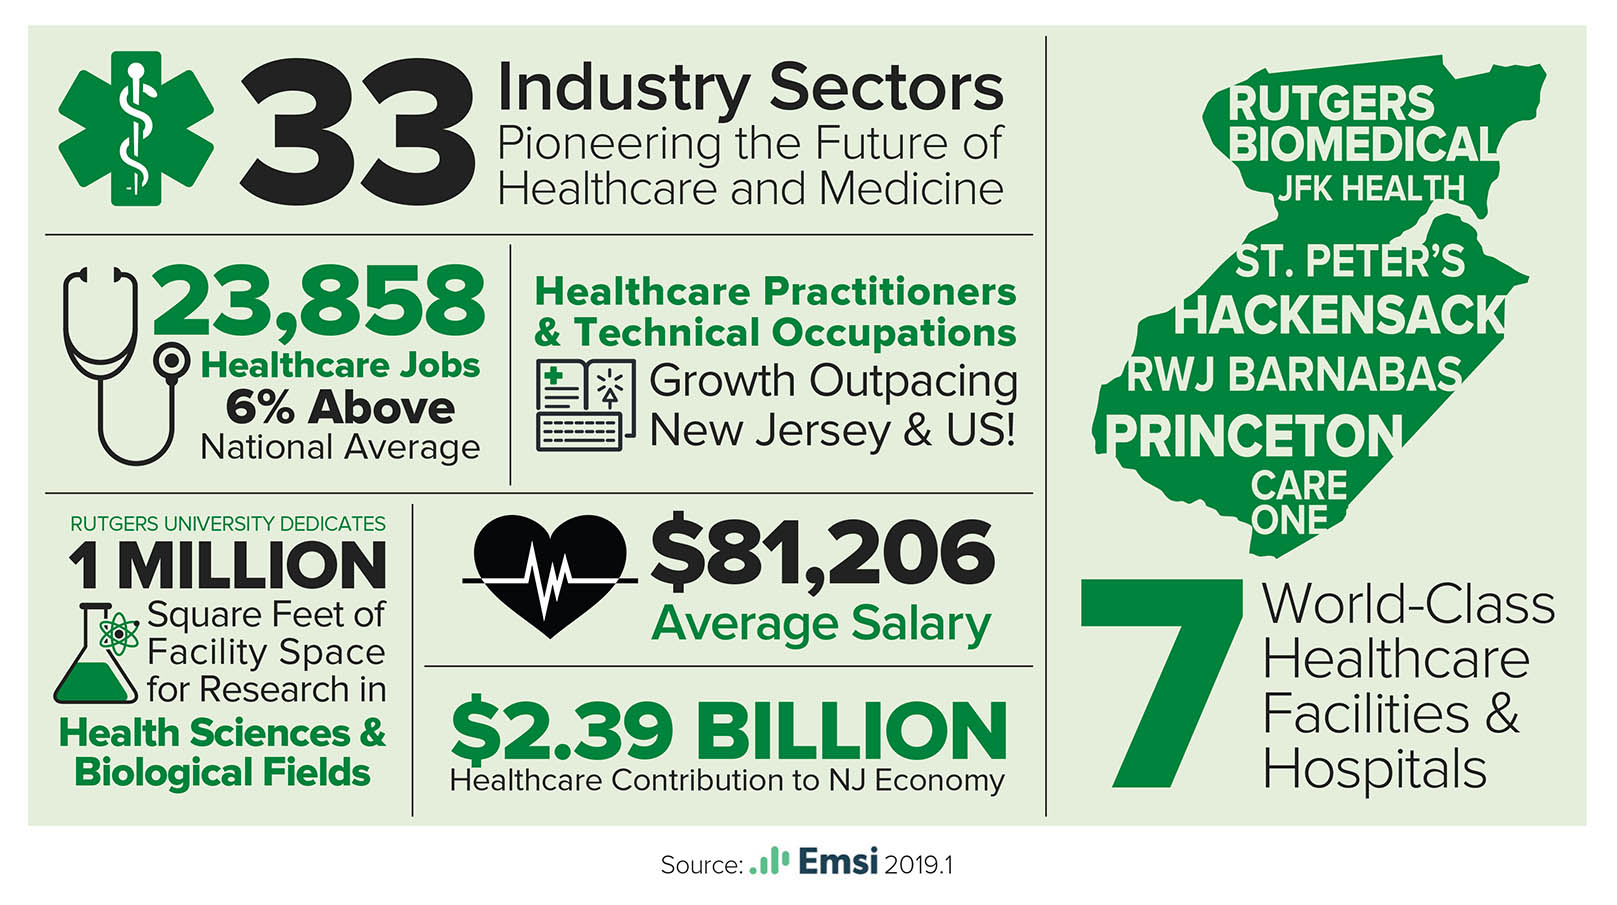 Facts about the healthcare industry.